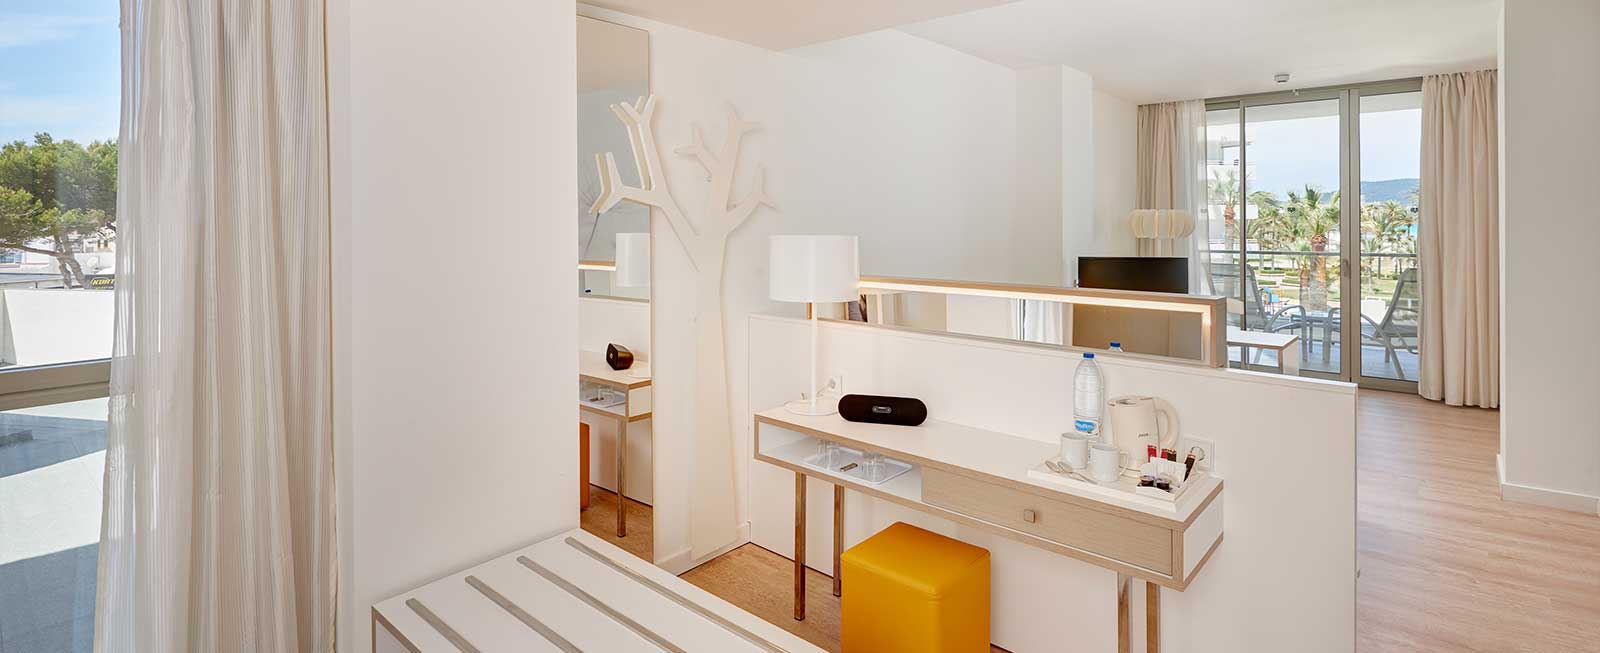 Protur Playa cala Millor Hotel Only Adults - Solo Adultos- Mallorca